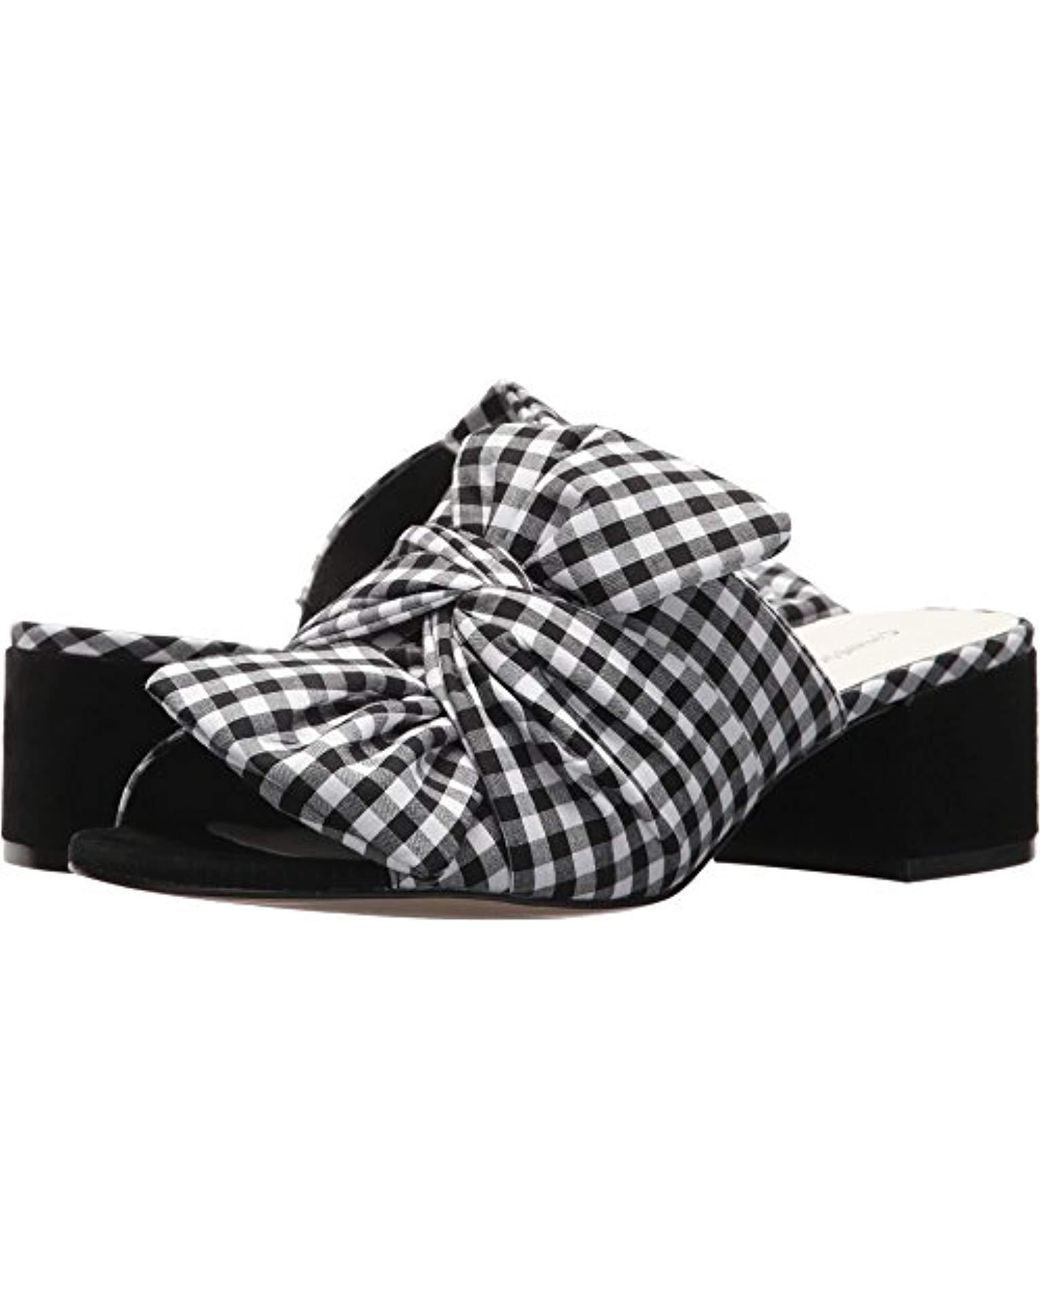 277d6e51828 Lyst - Chinese Laundry Marlowe Slide Sandal - Save 51%